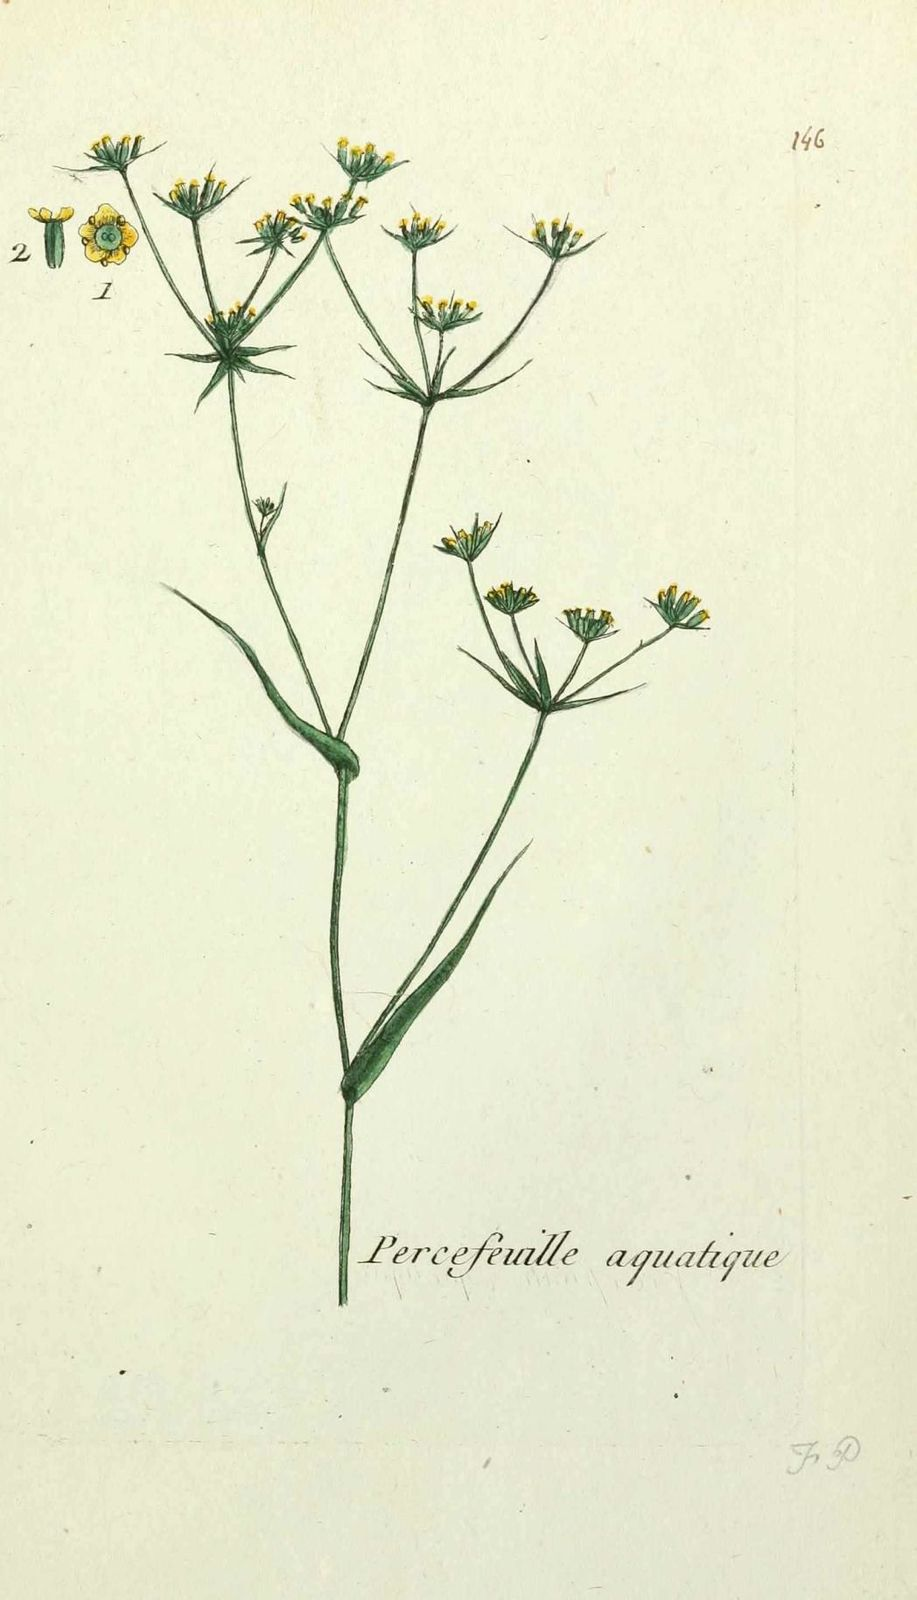 perce-feuille aquatique - buplevrum rotundifolium junceum